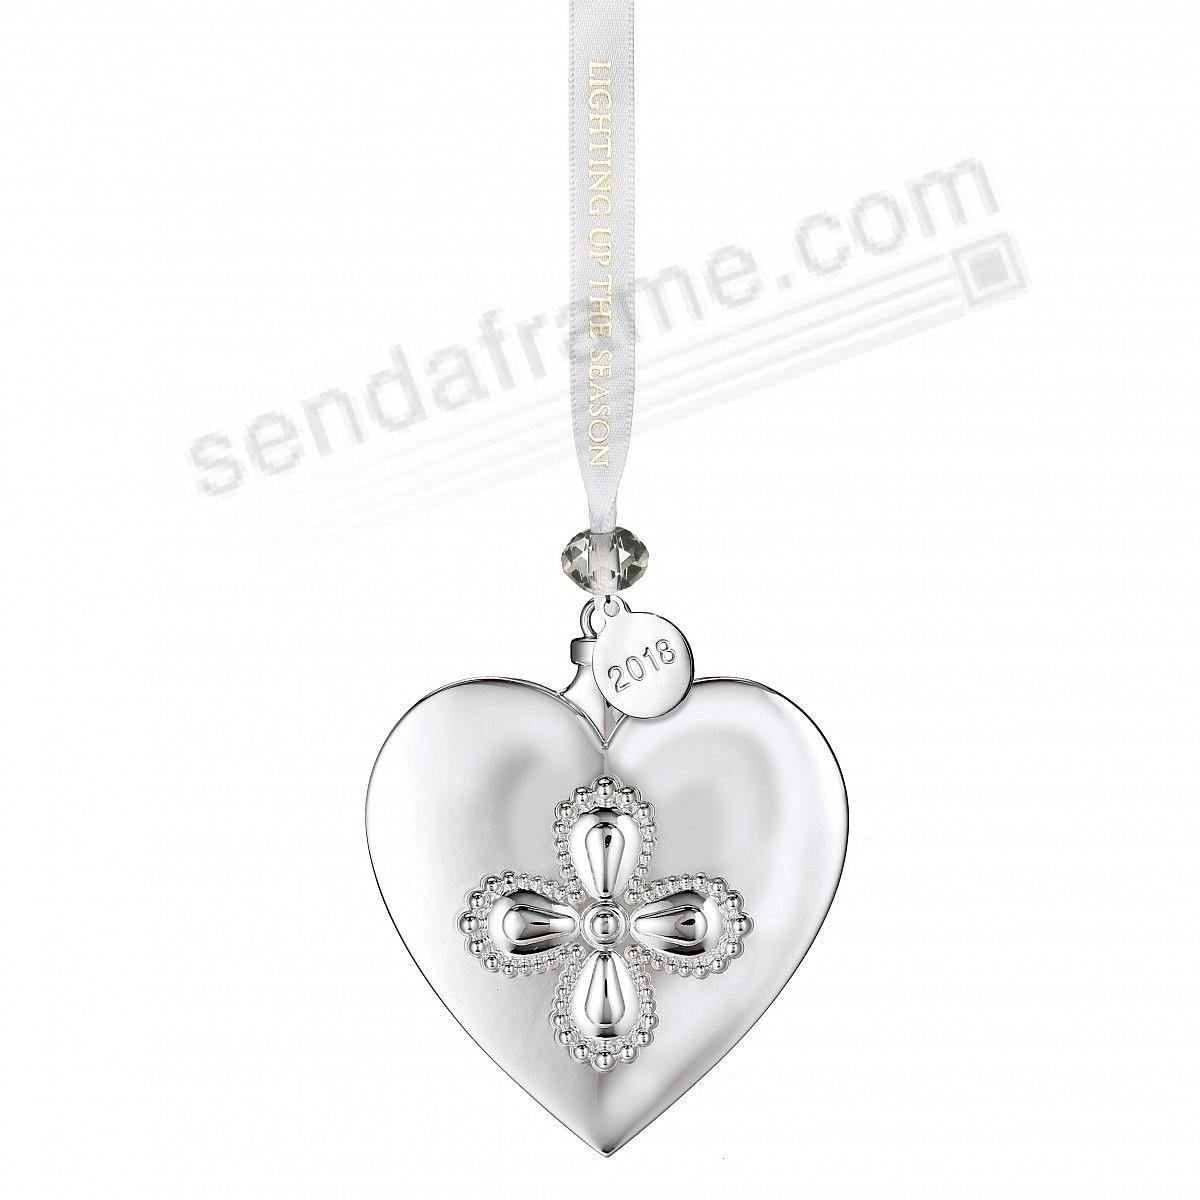 2018 Silver Heart Ornament by Waterford®